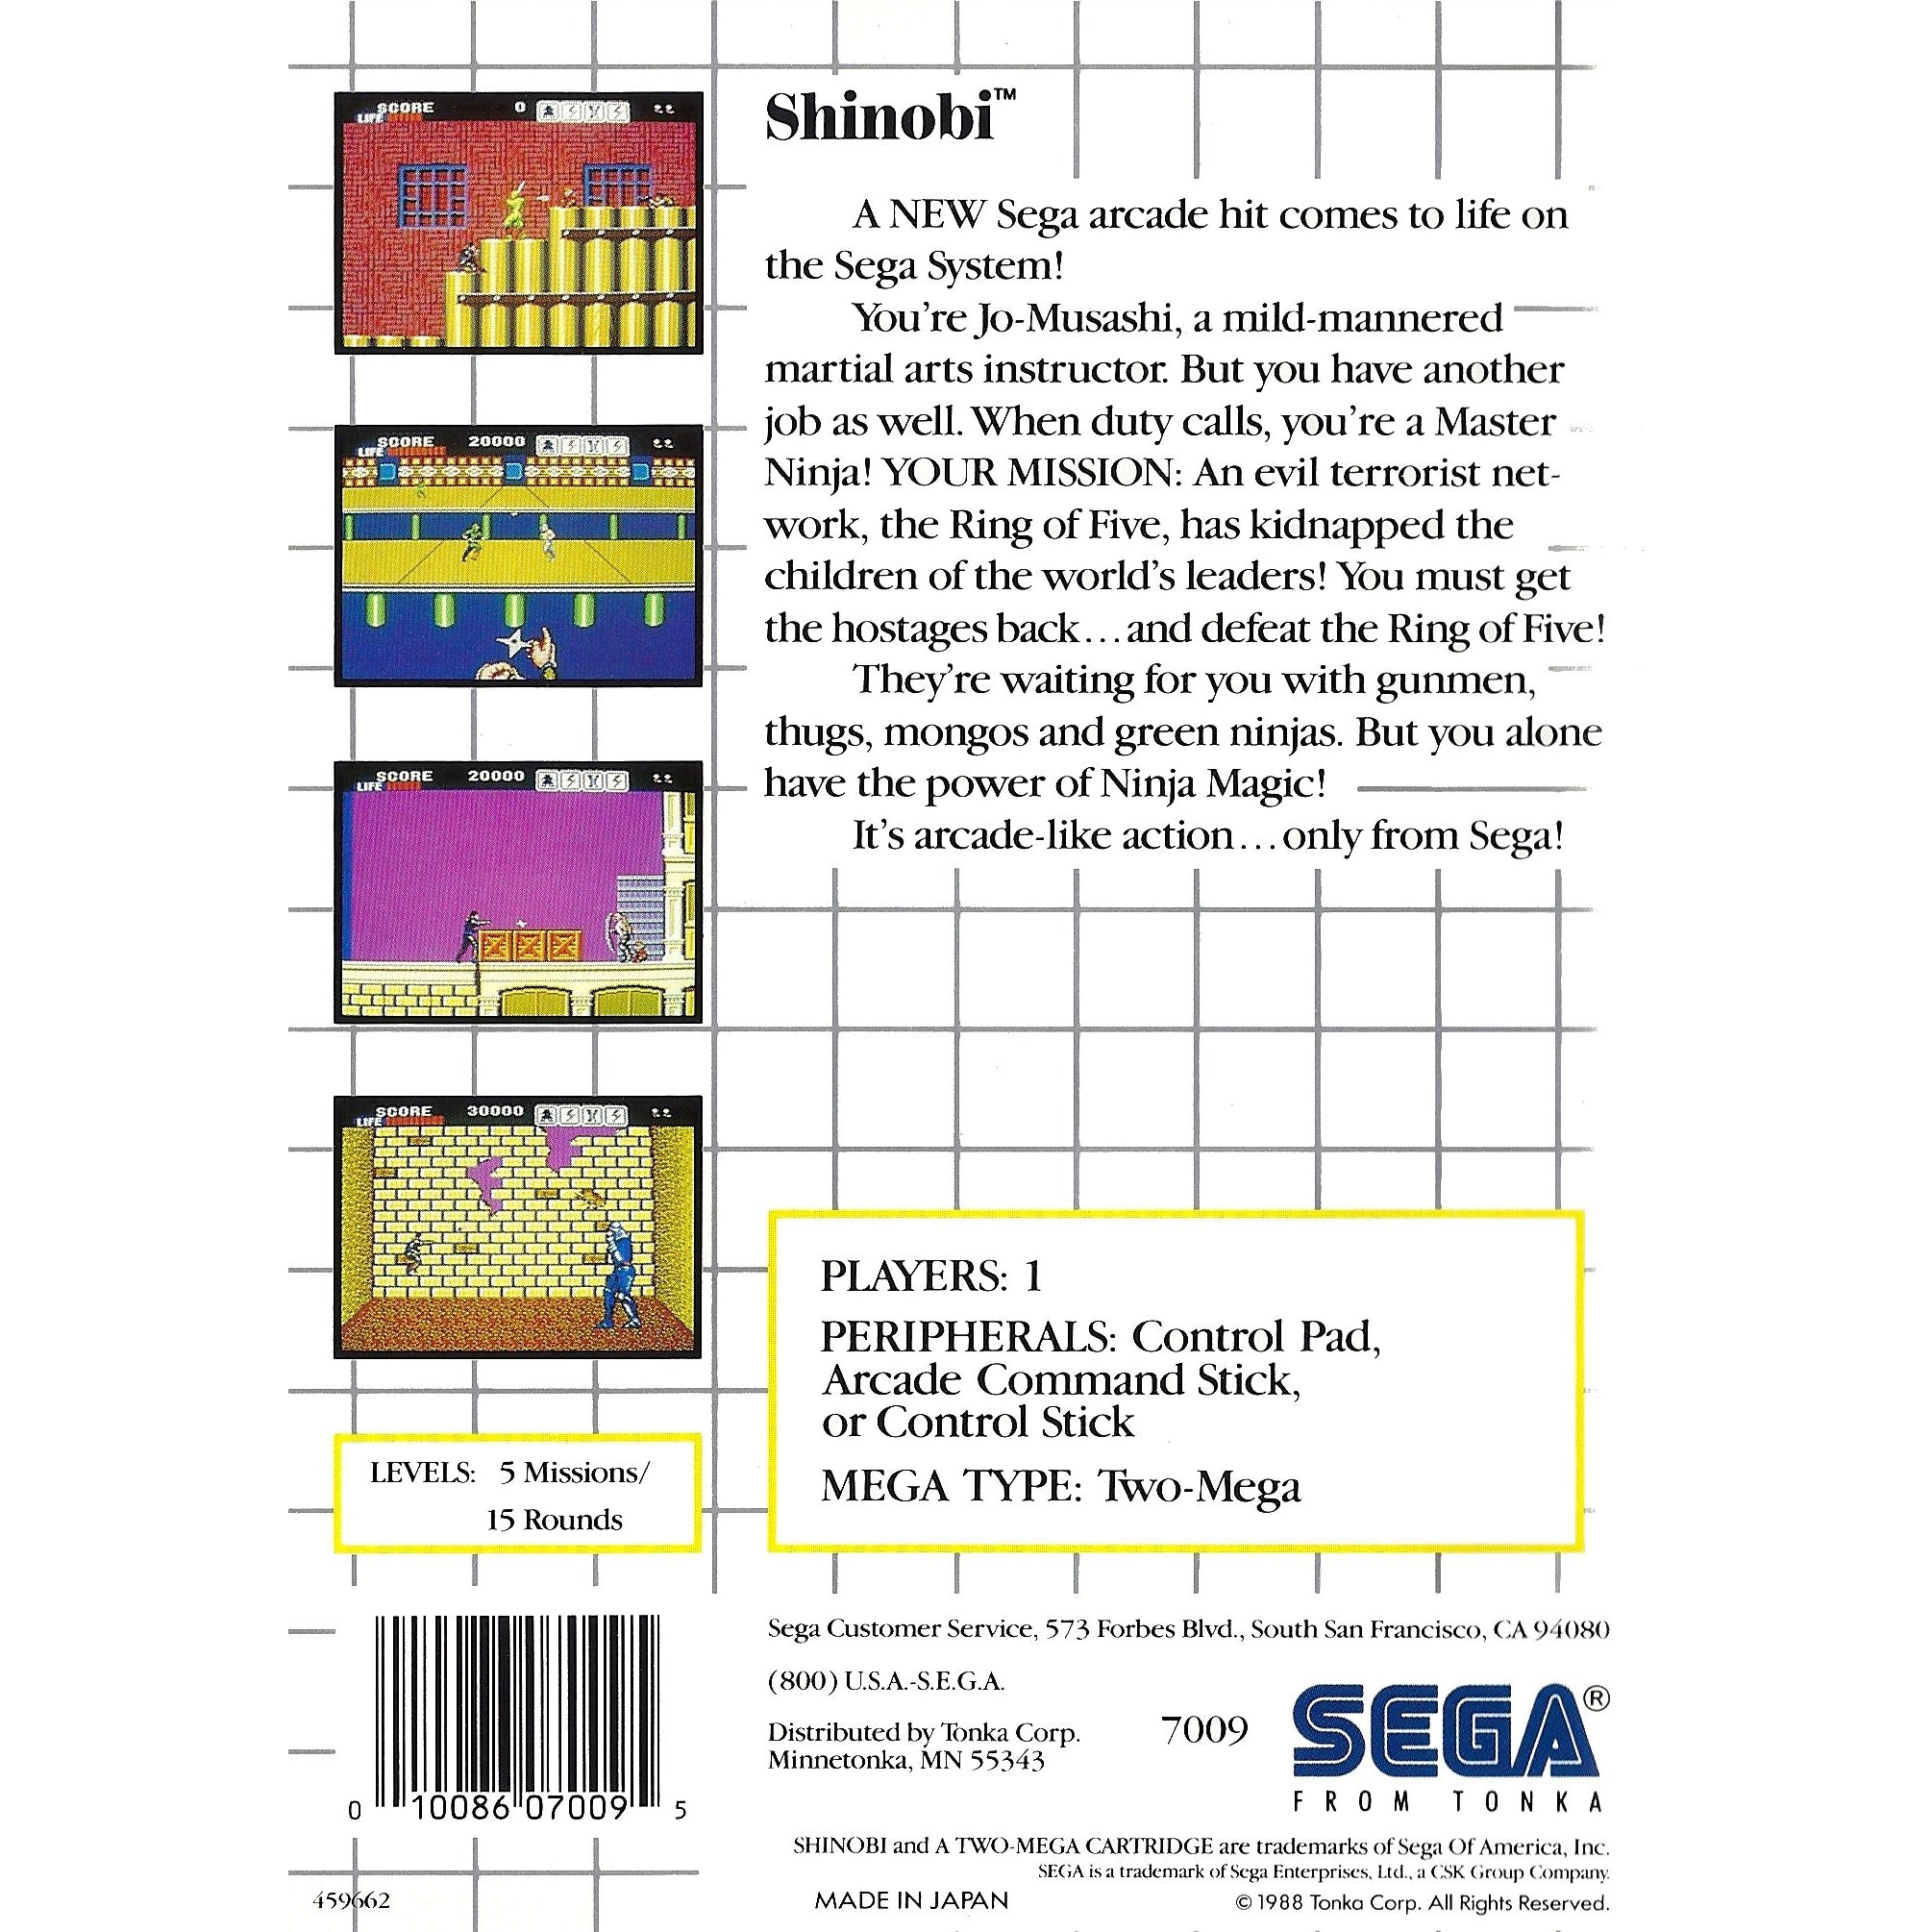 Shinobi - Sega Master System Game Complete - YourGamingShop.com - Buy, Sell, Trade Video Games Online. 120 Day Warranty. Satisfaction Guaranteed.